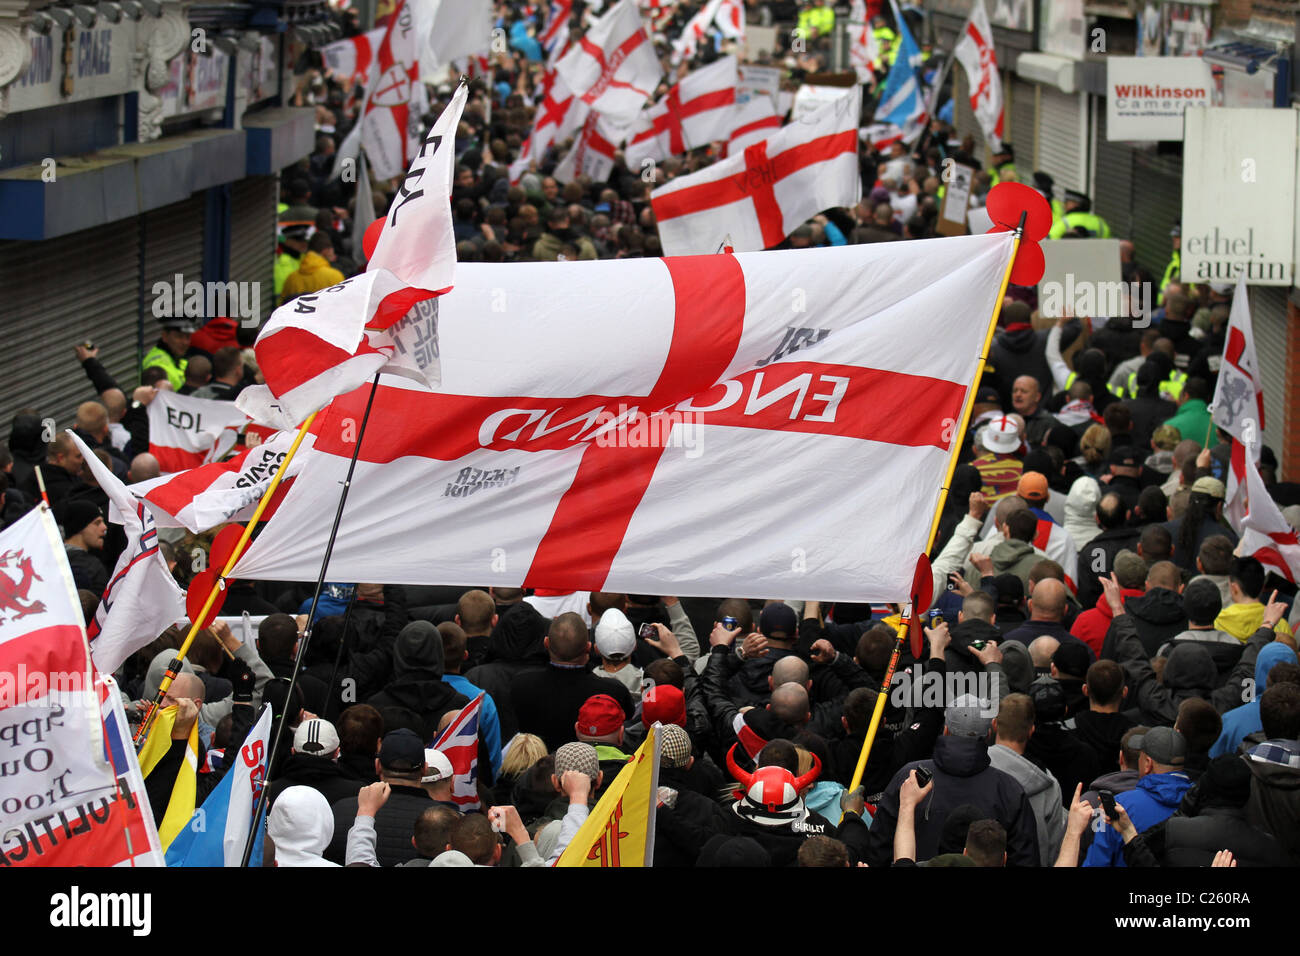 large crowds with england flags and banners at the english defence